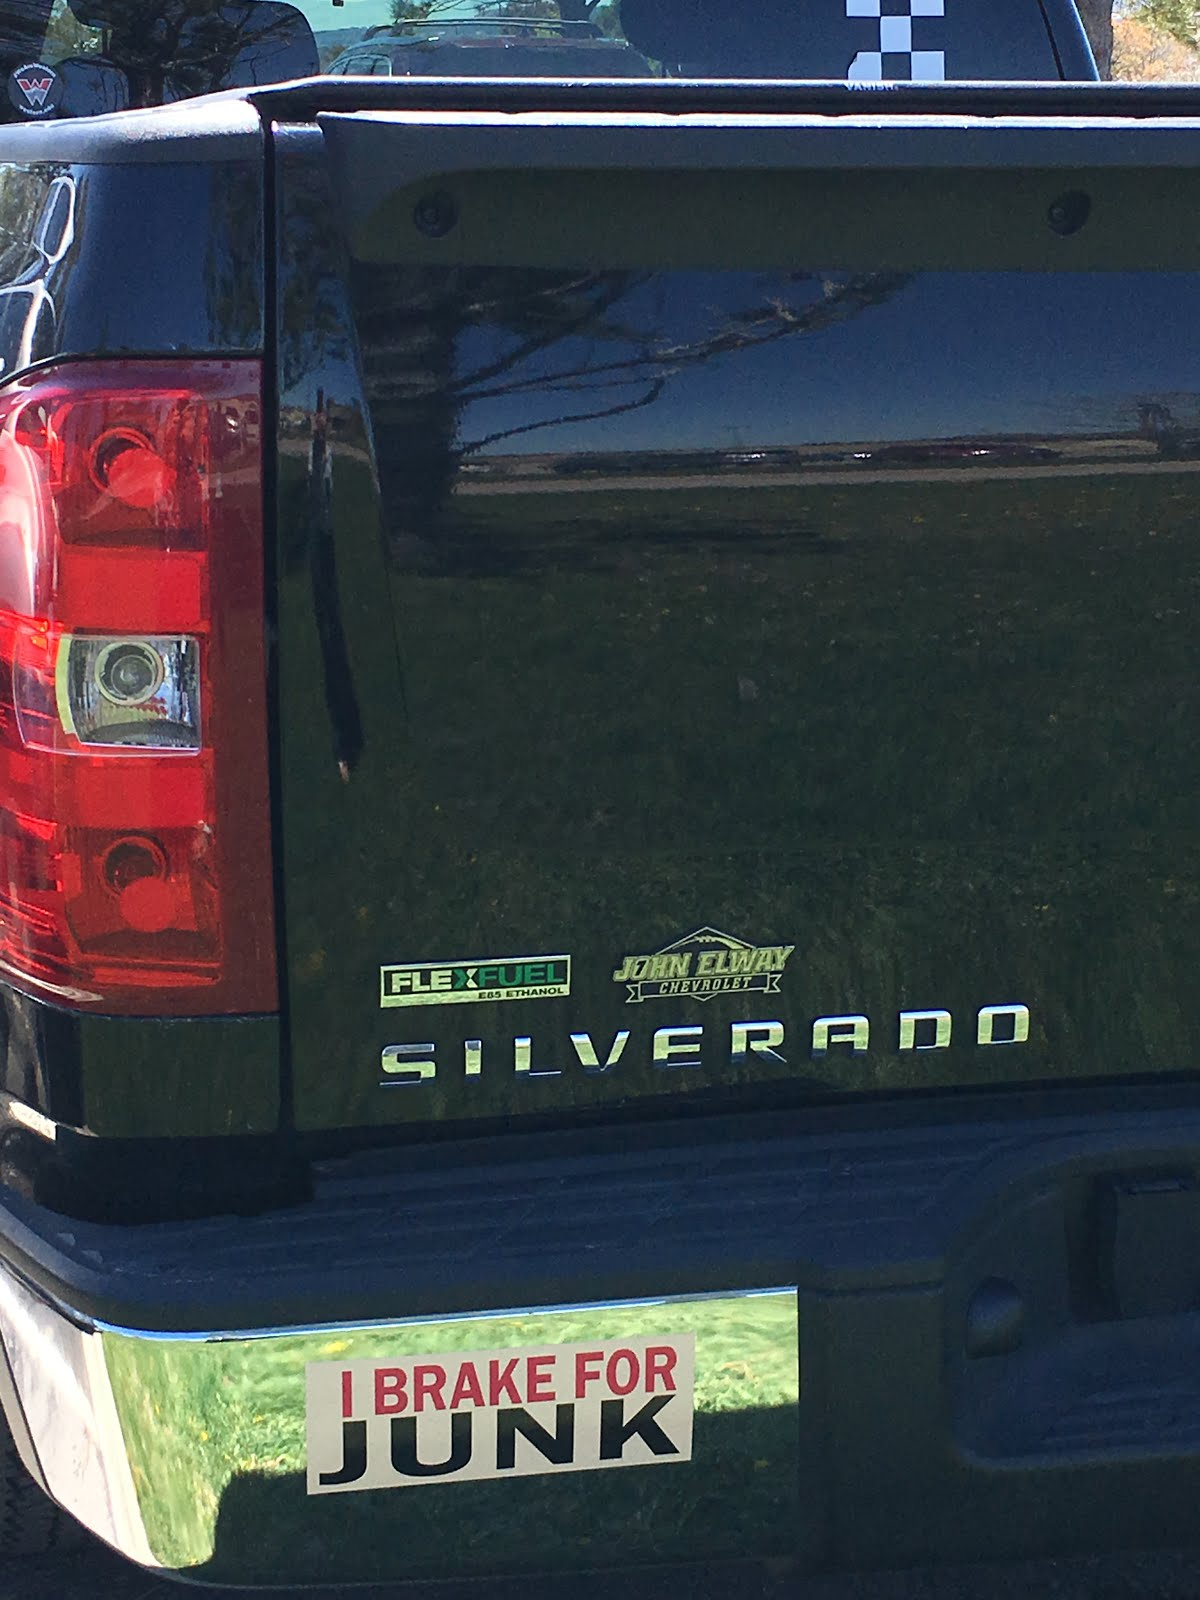 MY BUMPER STICKER SAYS IT ALL!